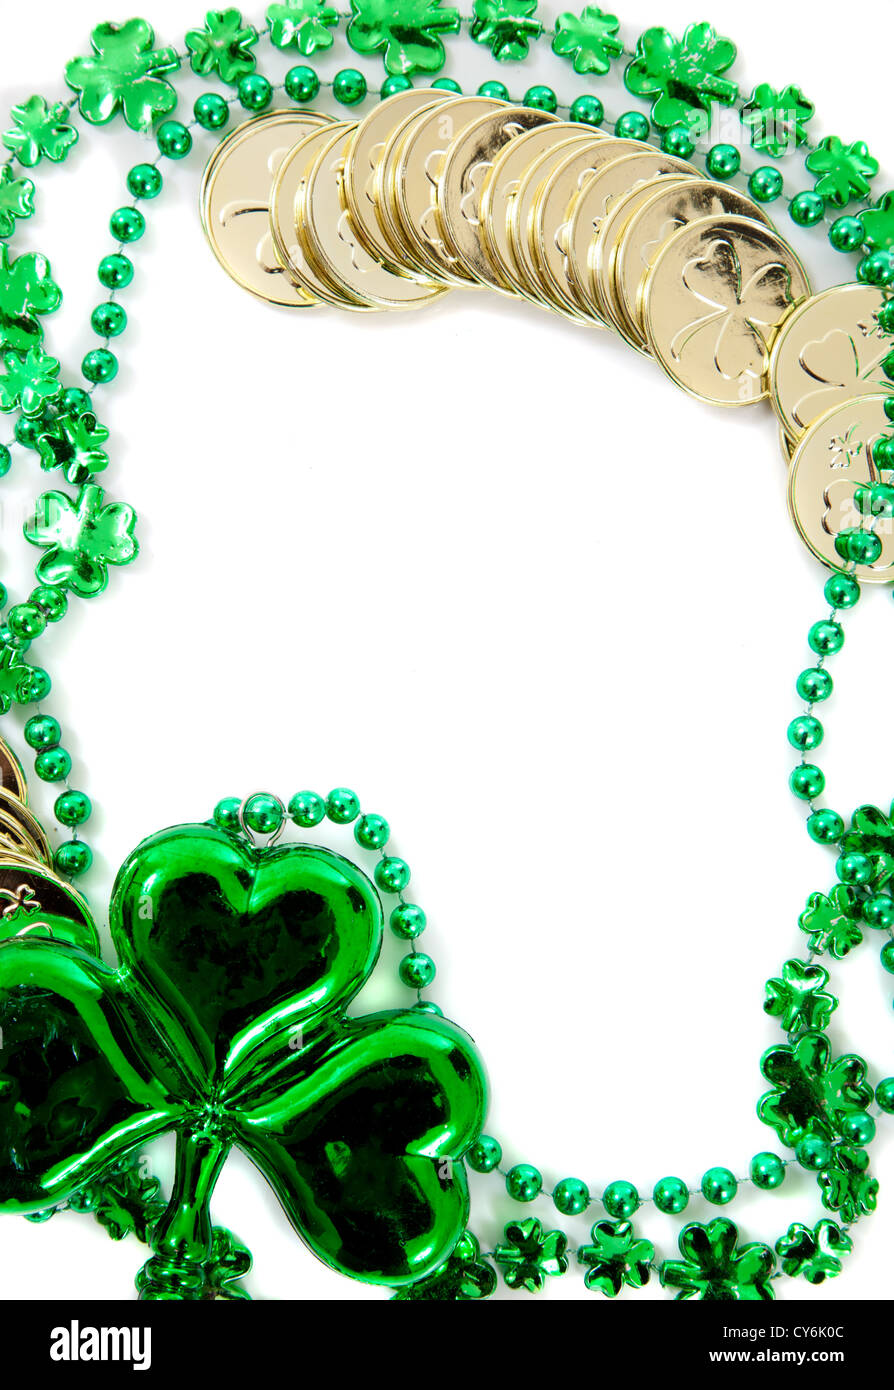 St Patricks Day Border Including Green Shamrock And Gold Coins On A White Background